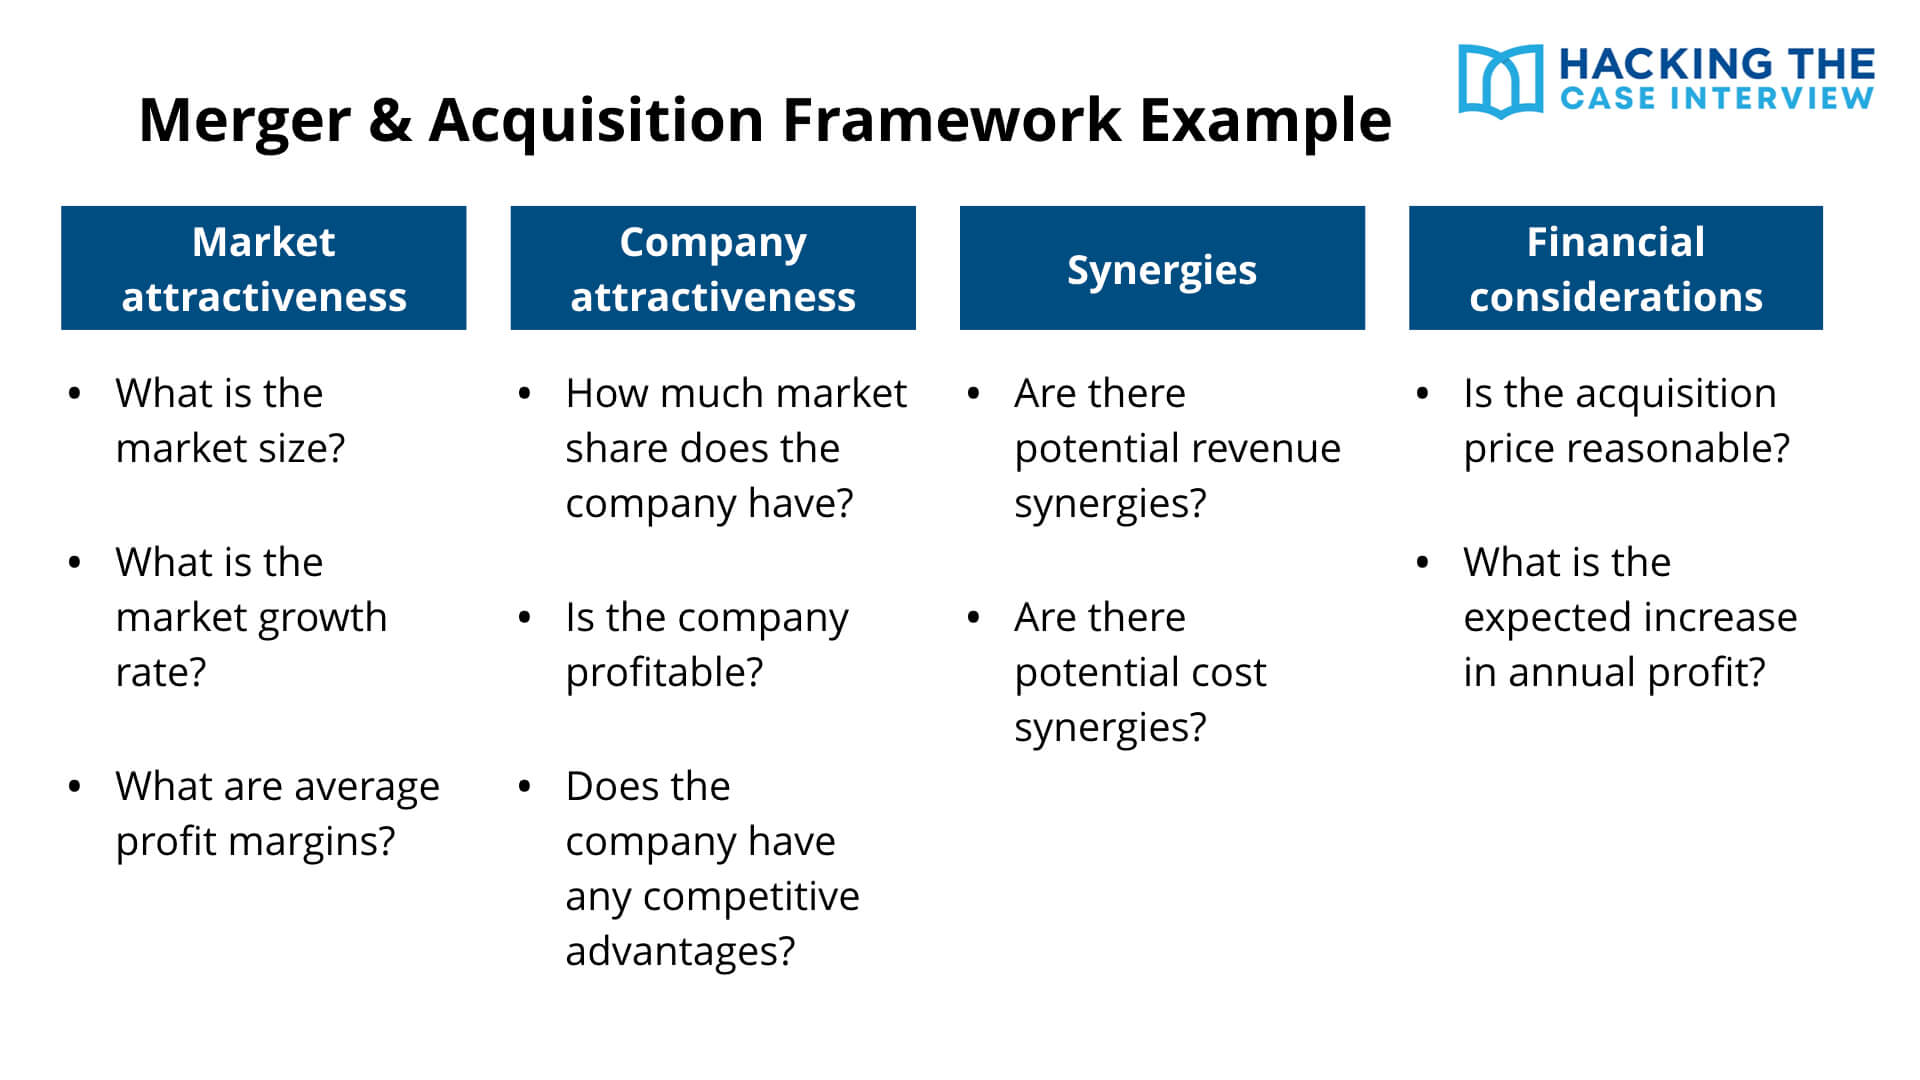 Merger & Acquisition Case Interview Framework Example